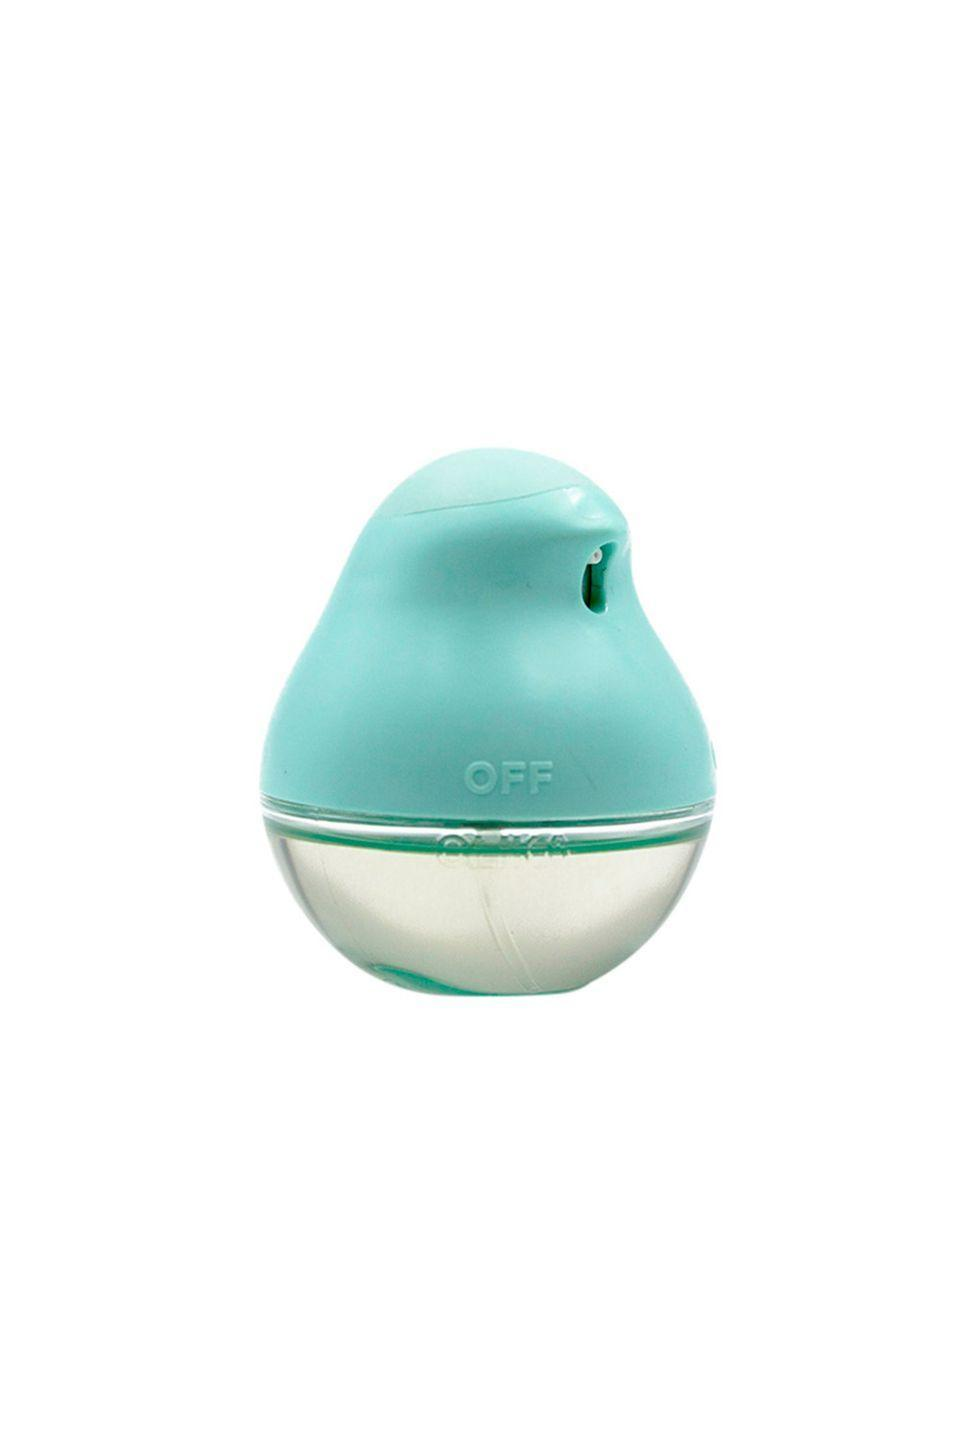 """<p>Every accessory should be this adorable. </p><p>Olika Minni in Robin's Egg, $13 for two, <a href=""""https://www.olikalife.com/"""" rel=""""nofollow noopener"""" target=""""_blank"""" data-ylk=""""slk:olikalife.com"""" class=""""link rapid-noclick-resp"""">olikalife.com</a></p>"""